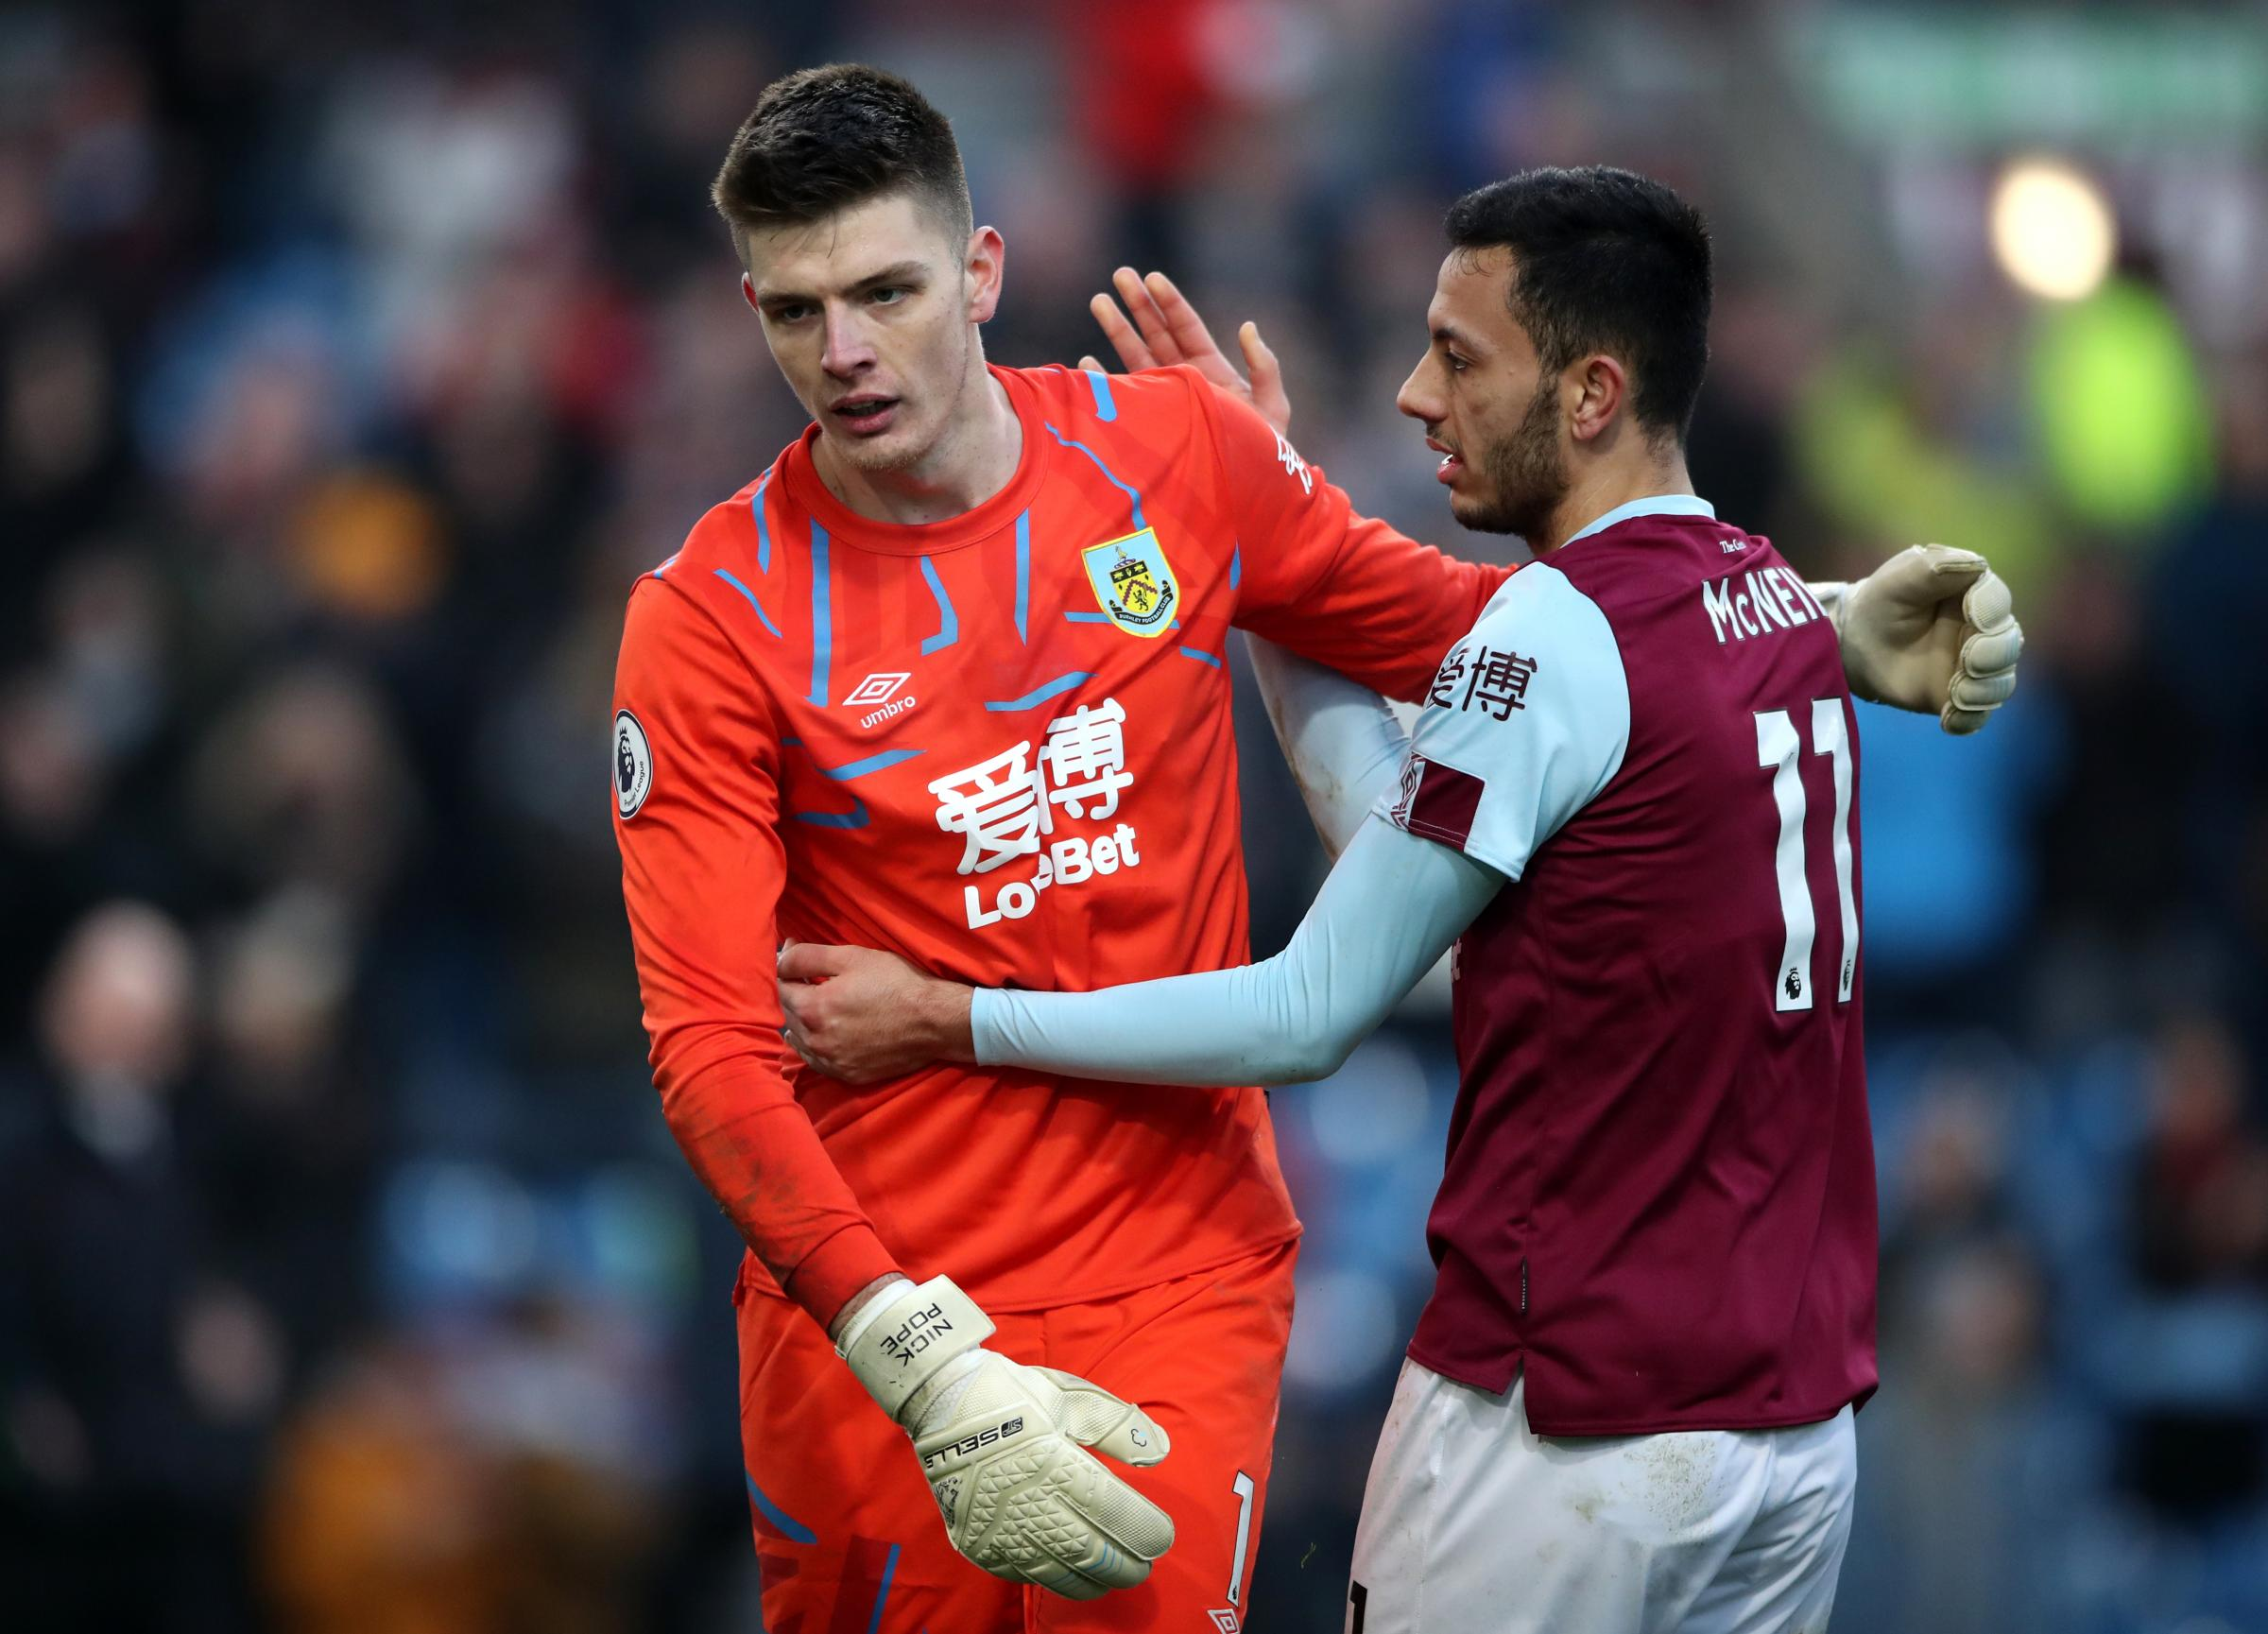 Nick Pope challenges Burnley to kick on against Man United